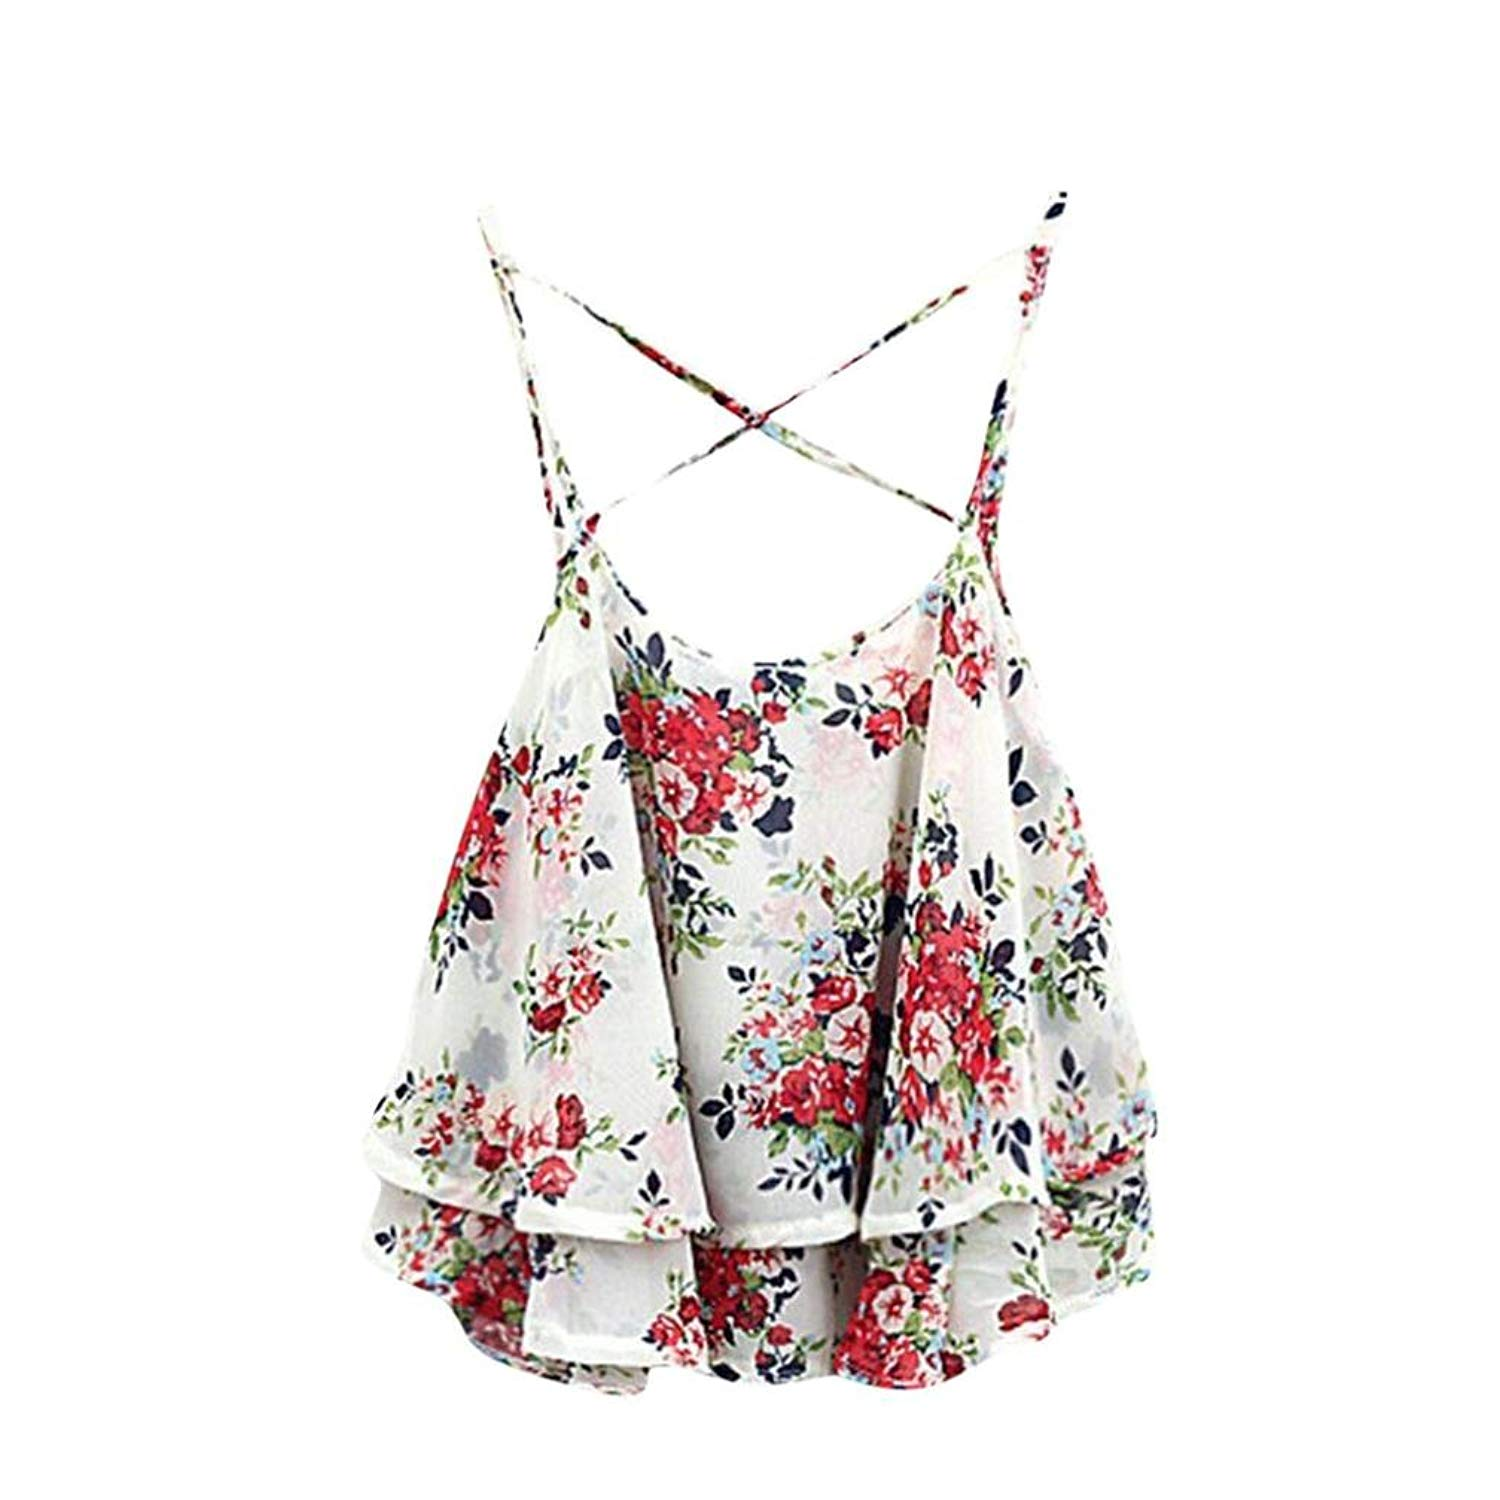 Paymenow Hot Sale 2018 Women Girls Sexy Spaghetti Strap Vest Tank Tops Floral Print Sleeveless Layered Shirts Blouse